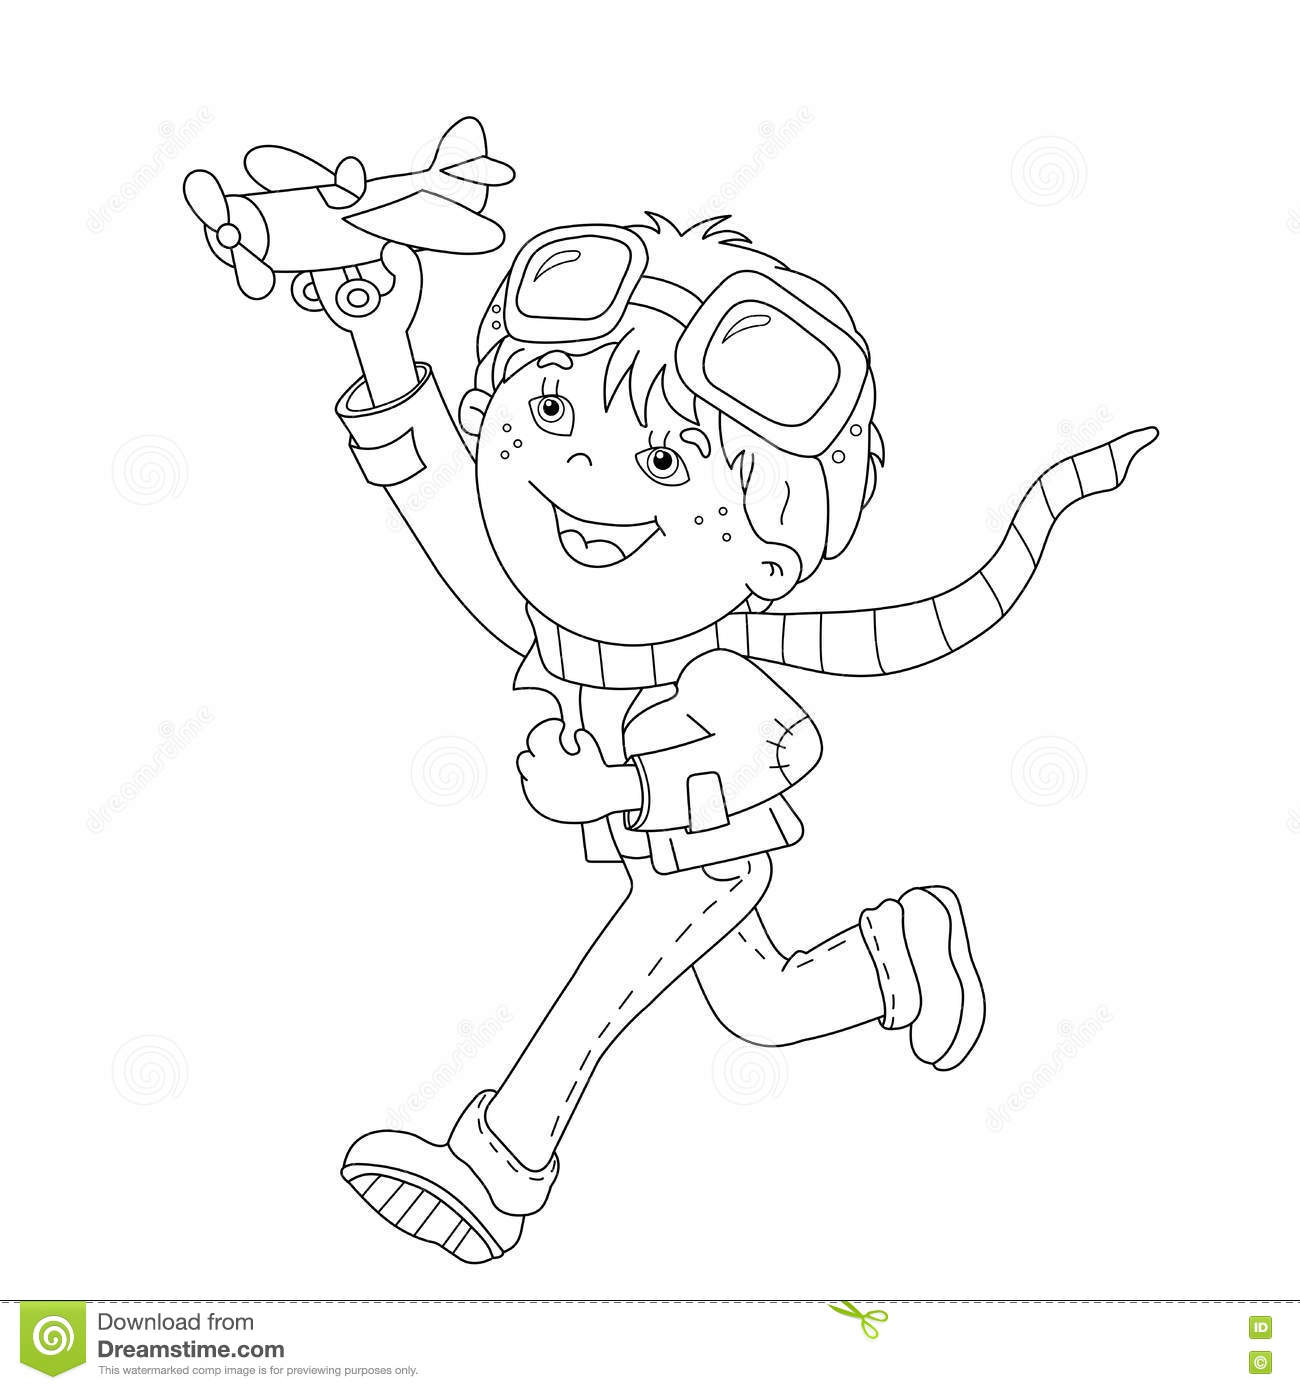 Coloring Page Outline Of Cartoon Boy With Toy Plane Stock